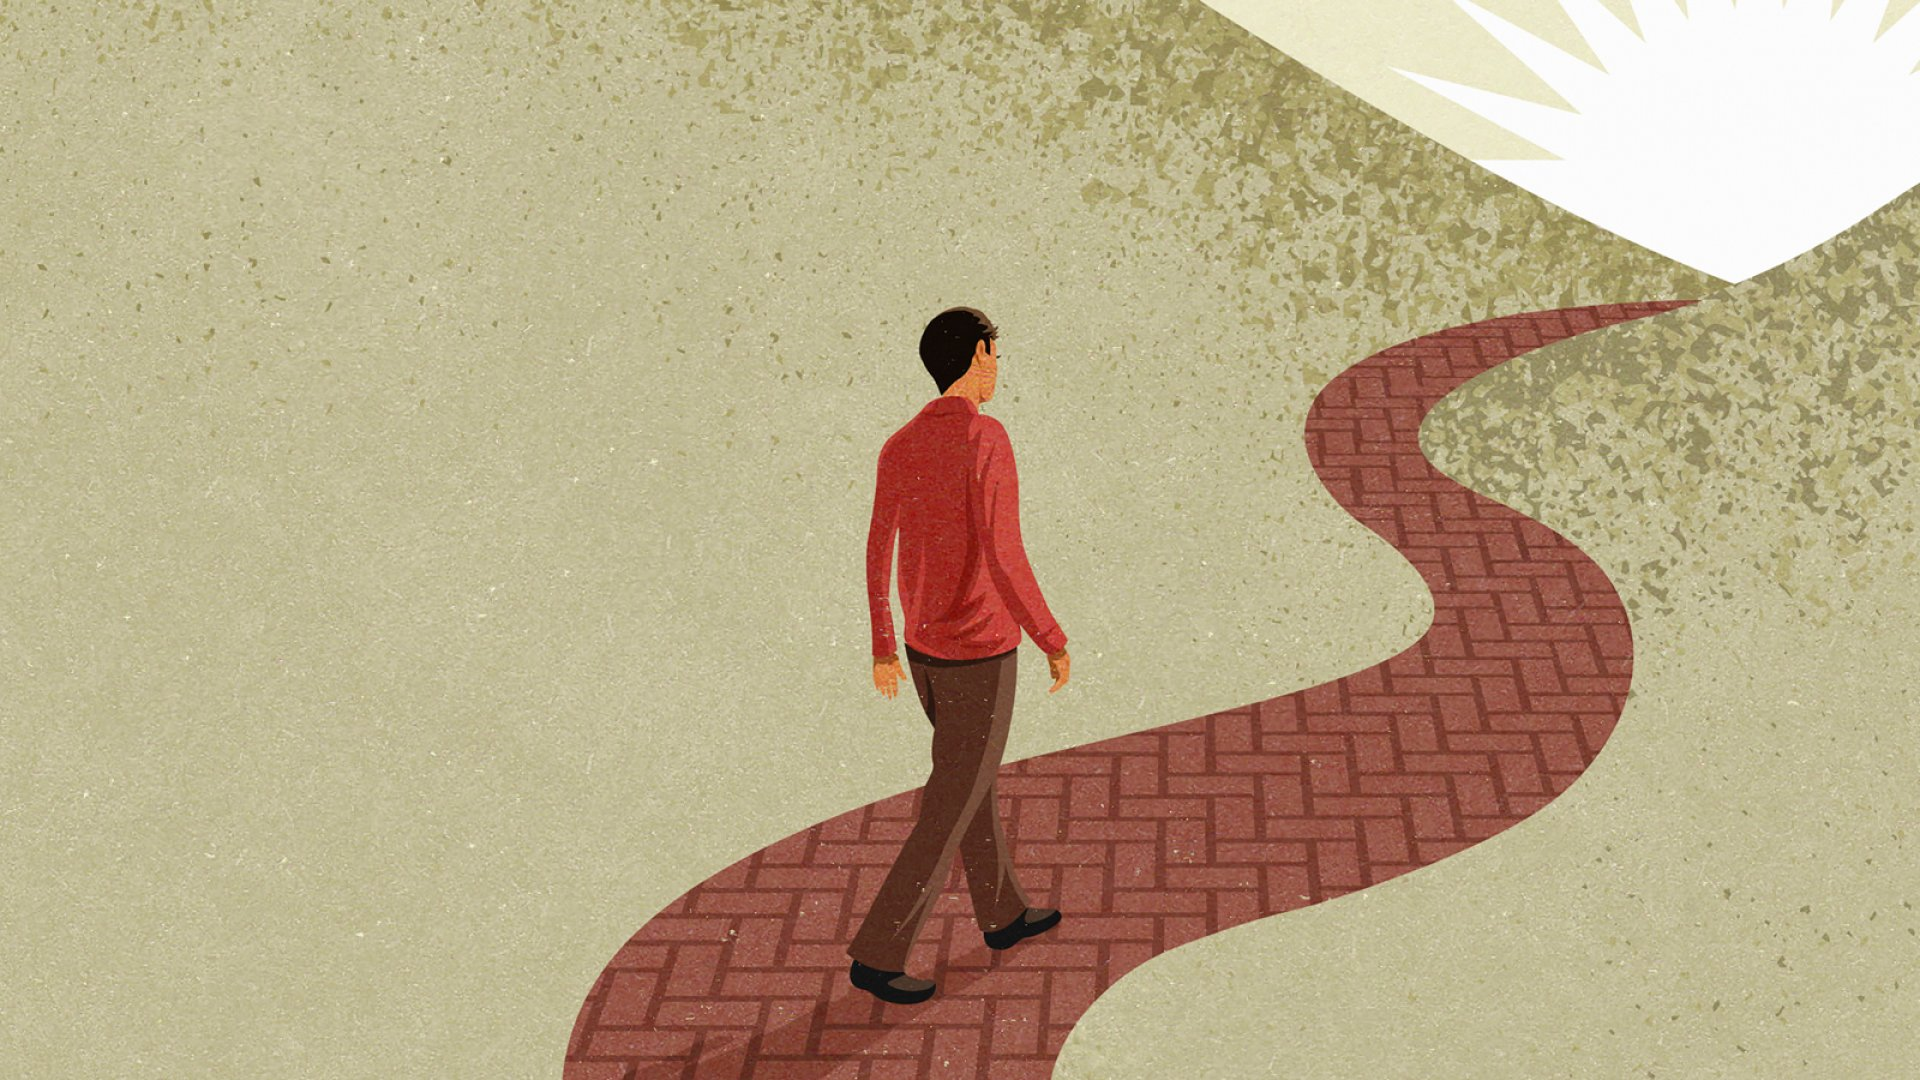 Feeling Stuck? Answer These 3 Questions About Your Past to See How You Should Proceed